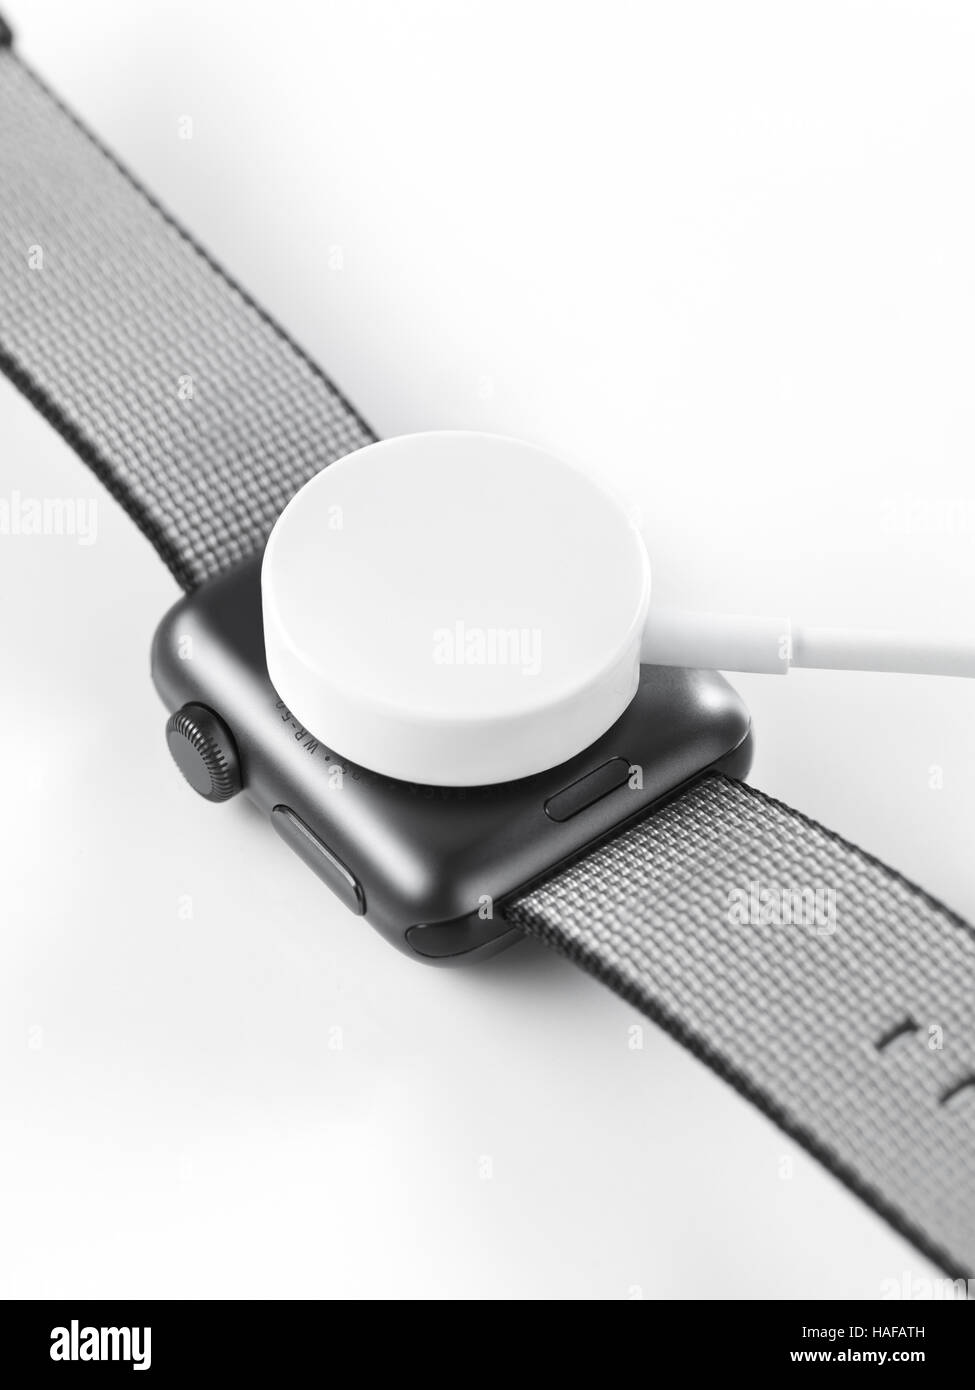 Apple Watch smartwatch charging wirelessly by inductive wireless charger - Stock Image